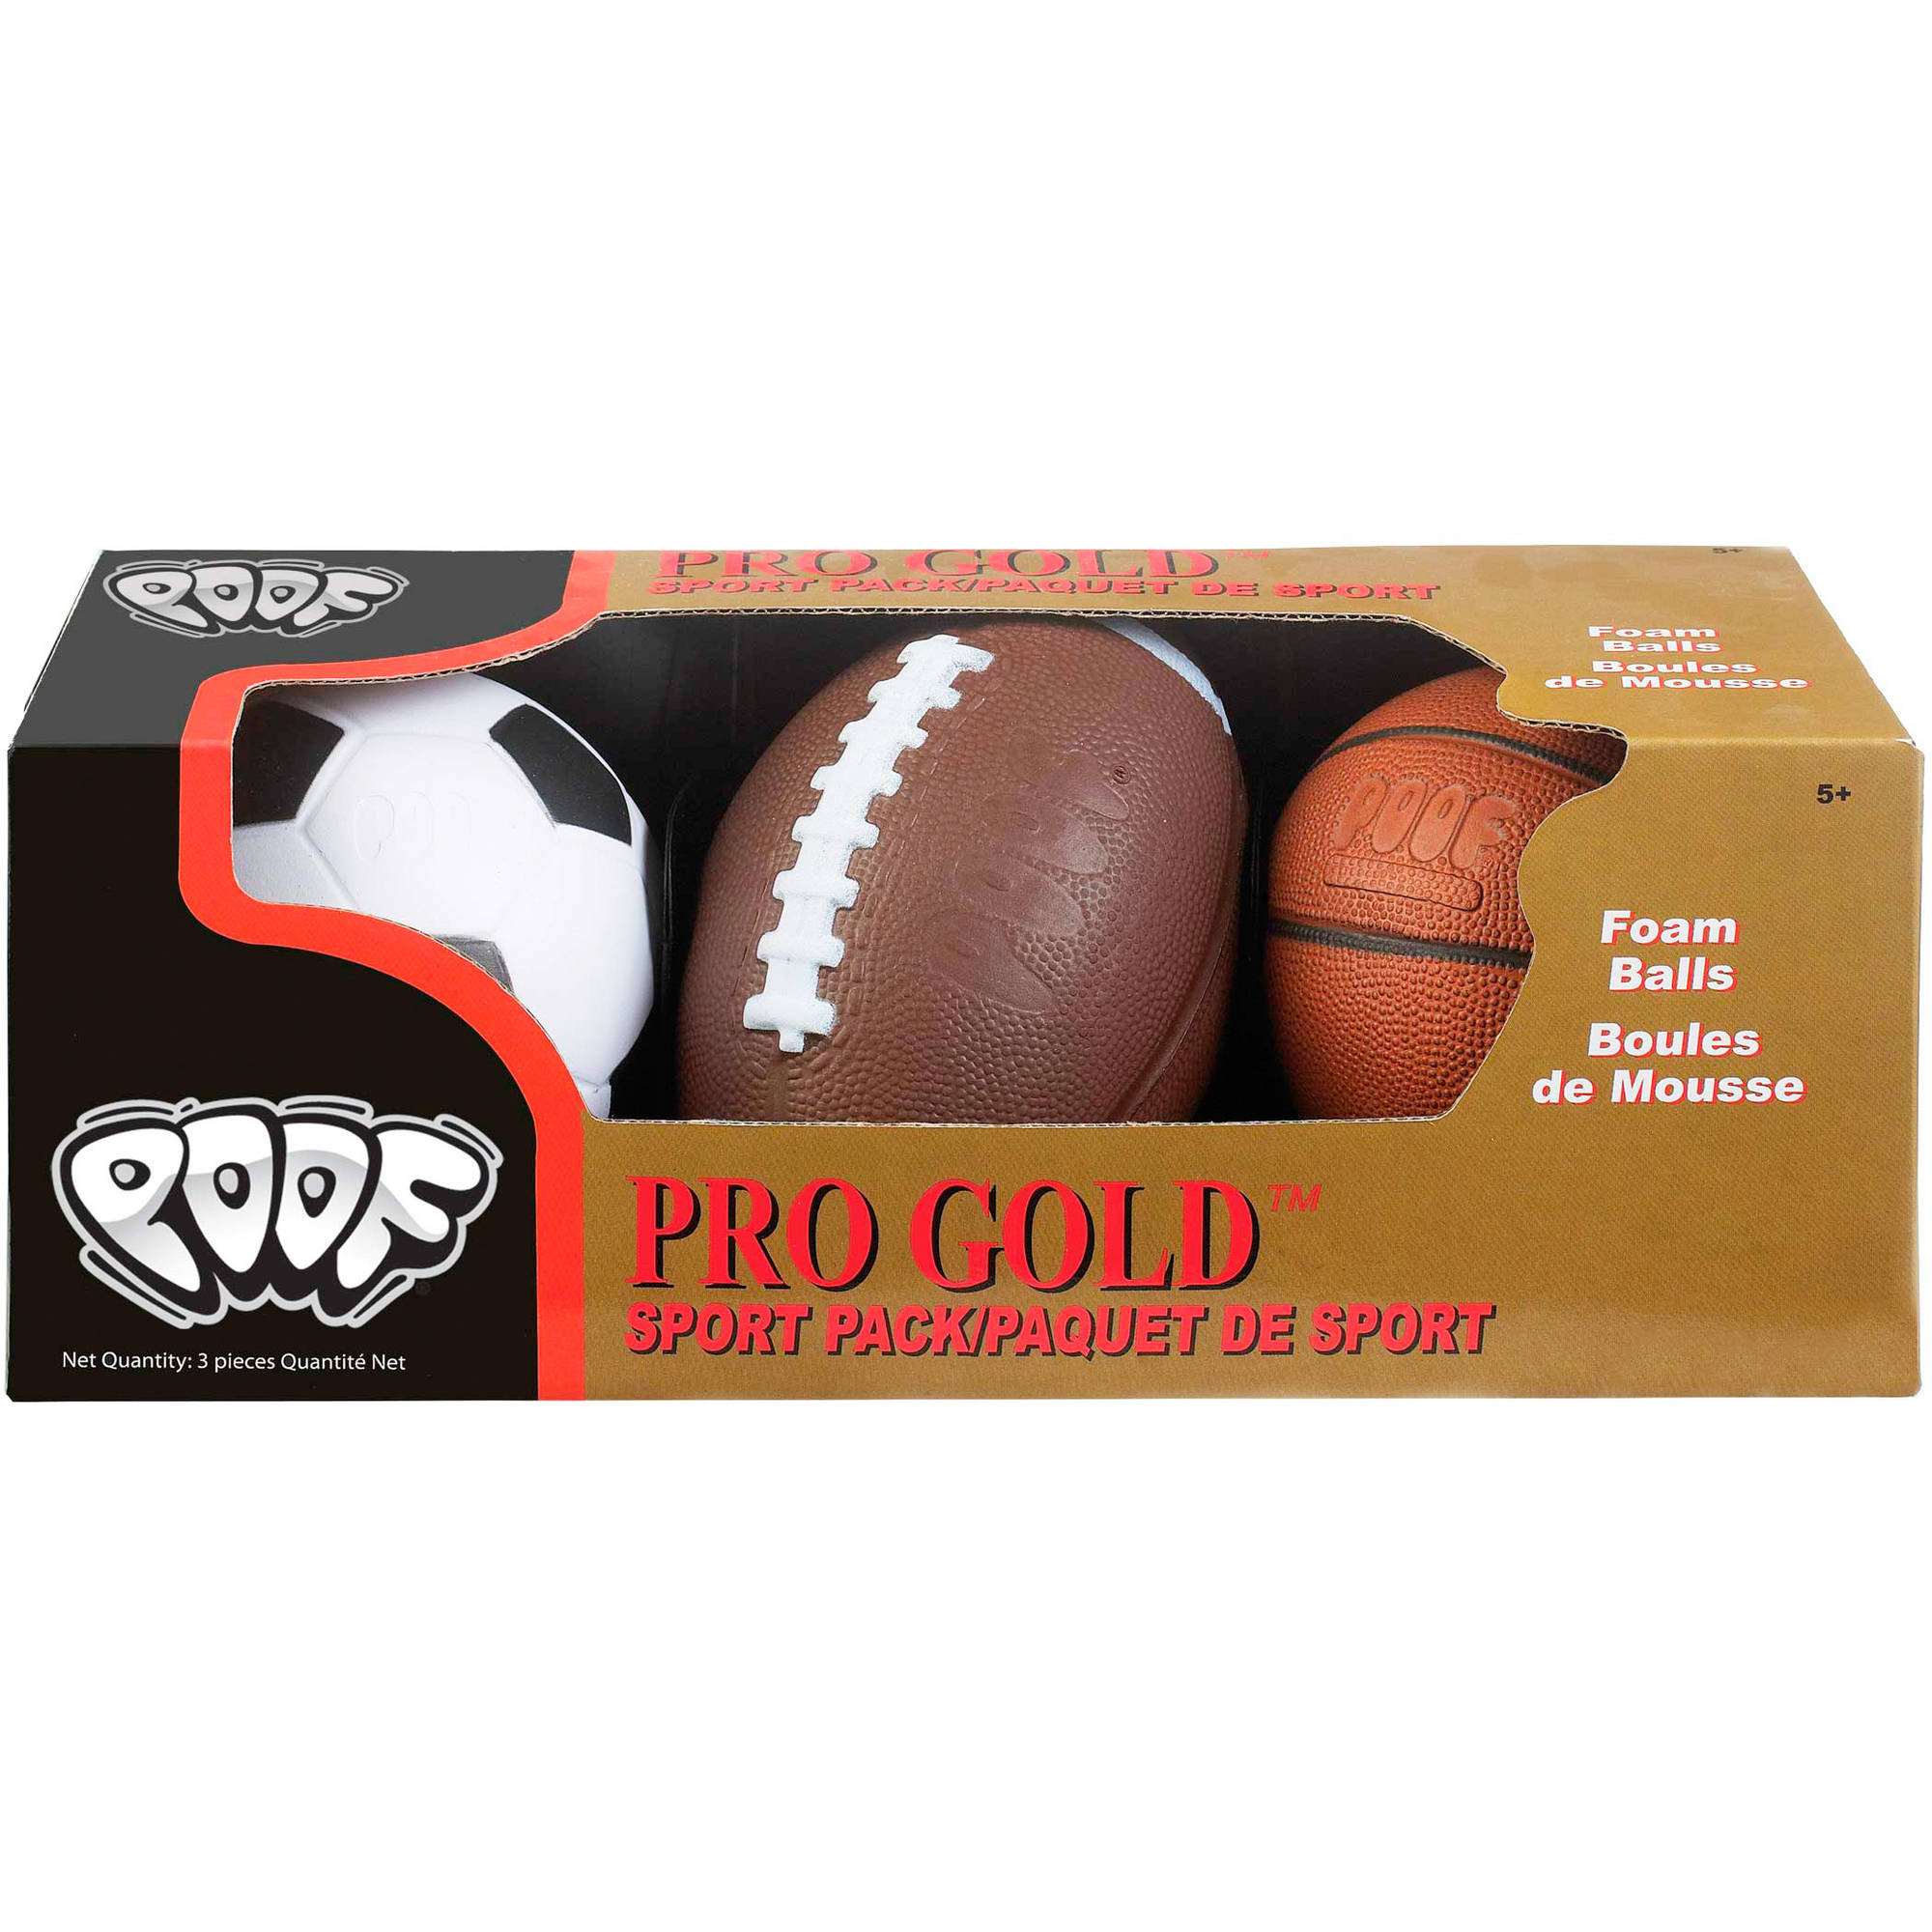 POOF Pro Gold Sport Pack